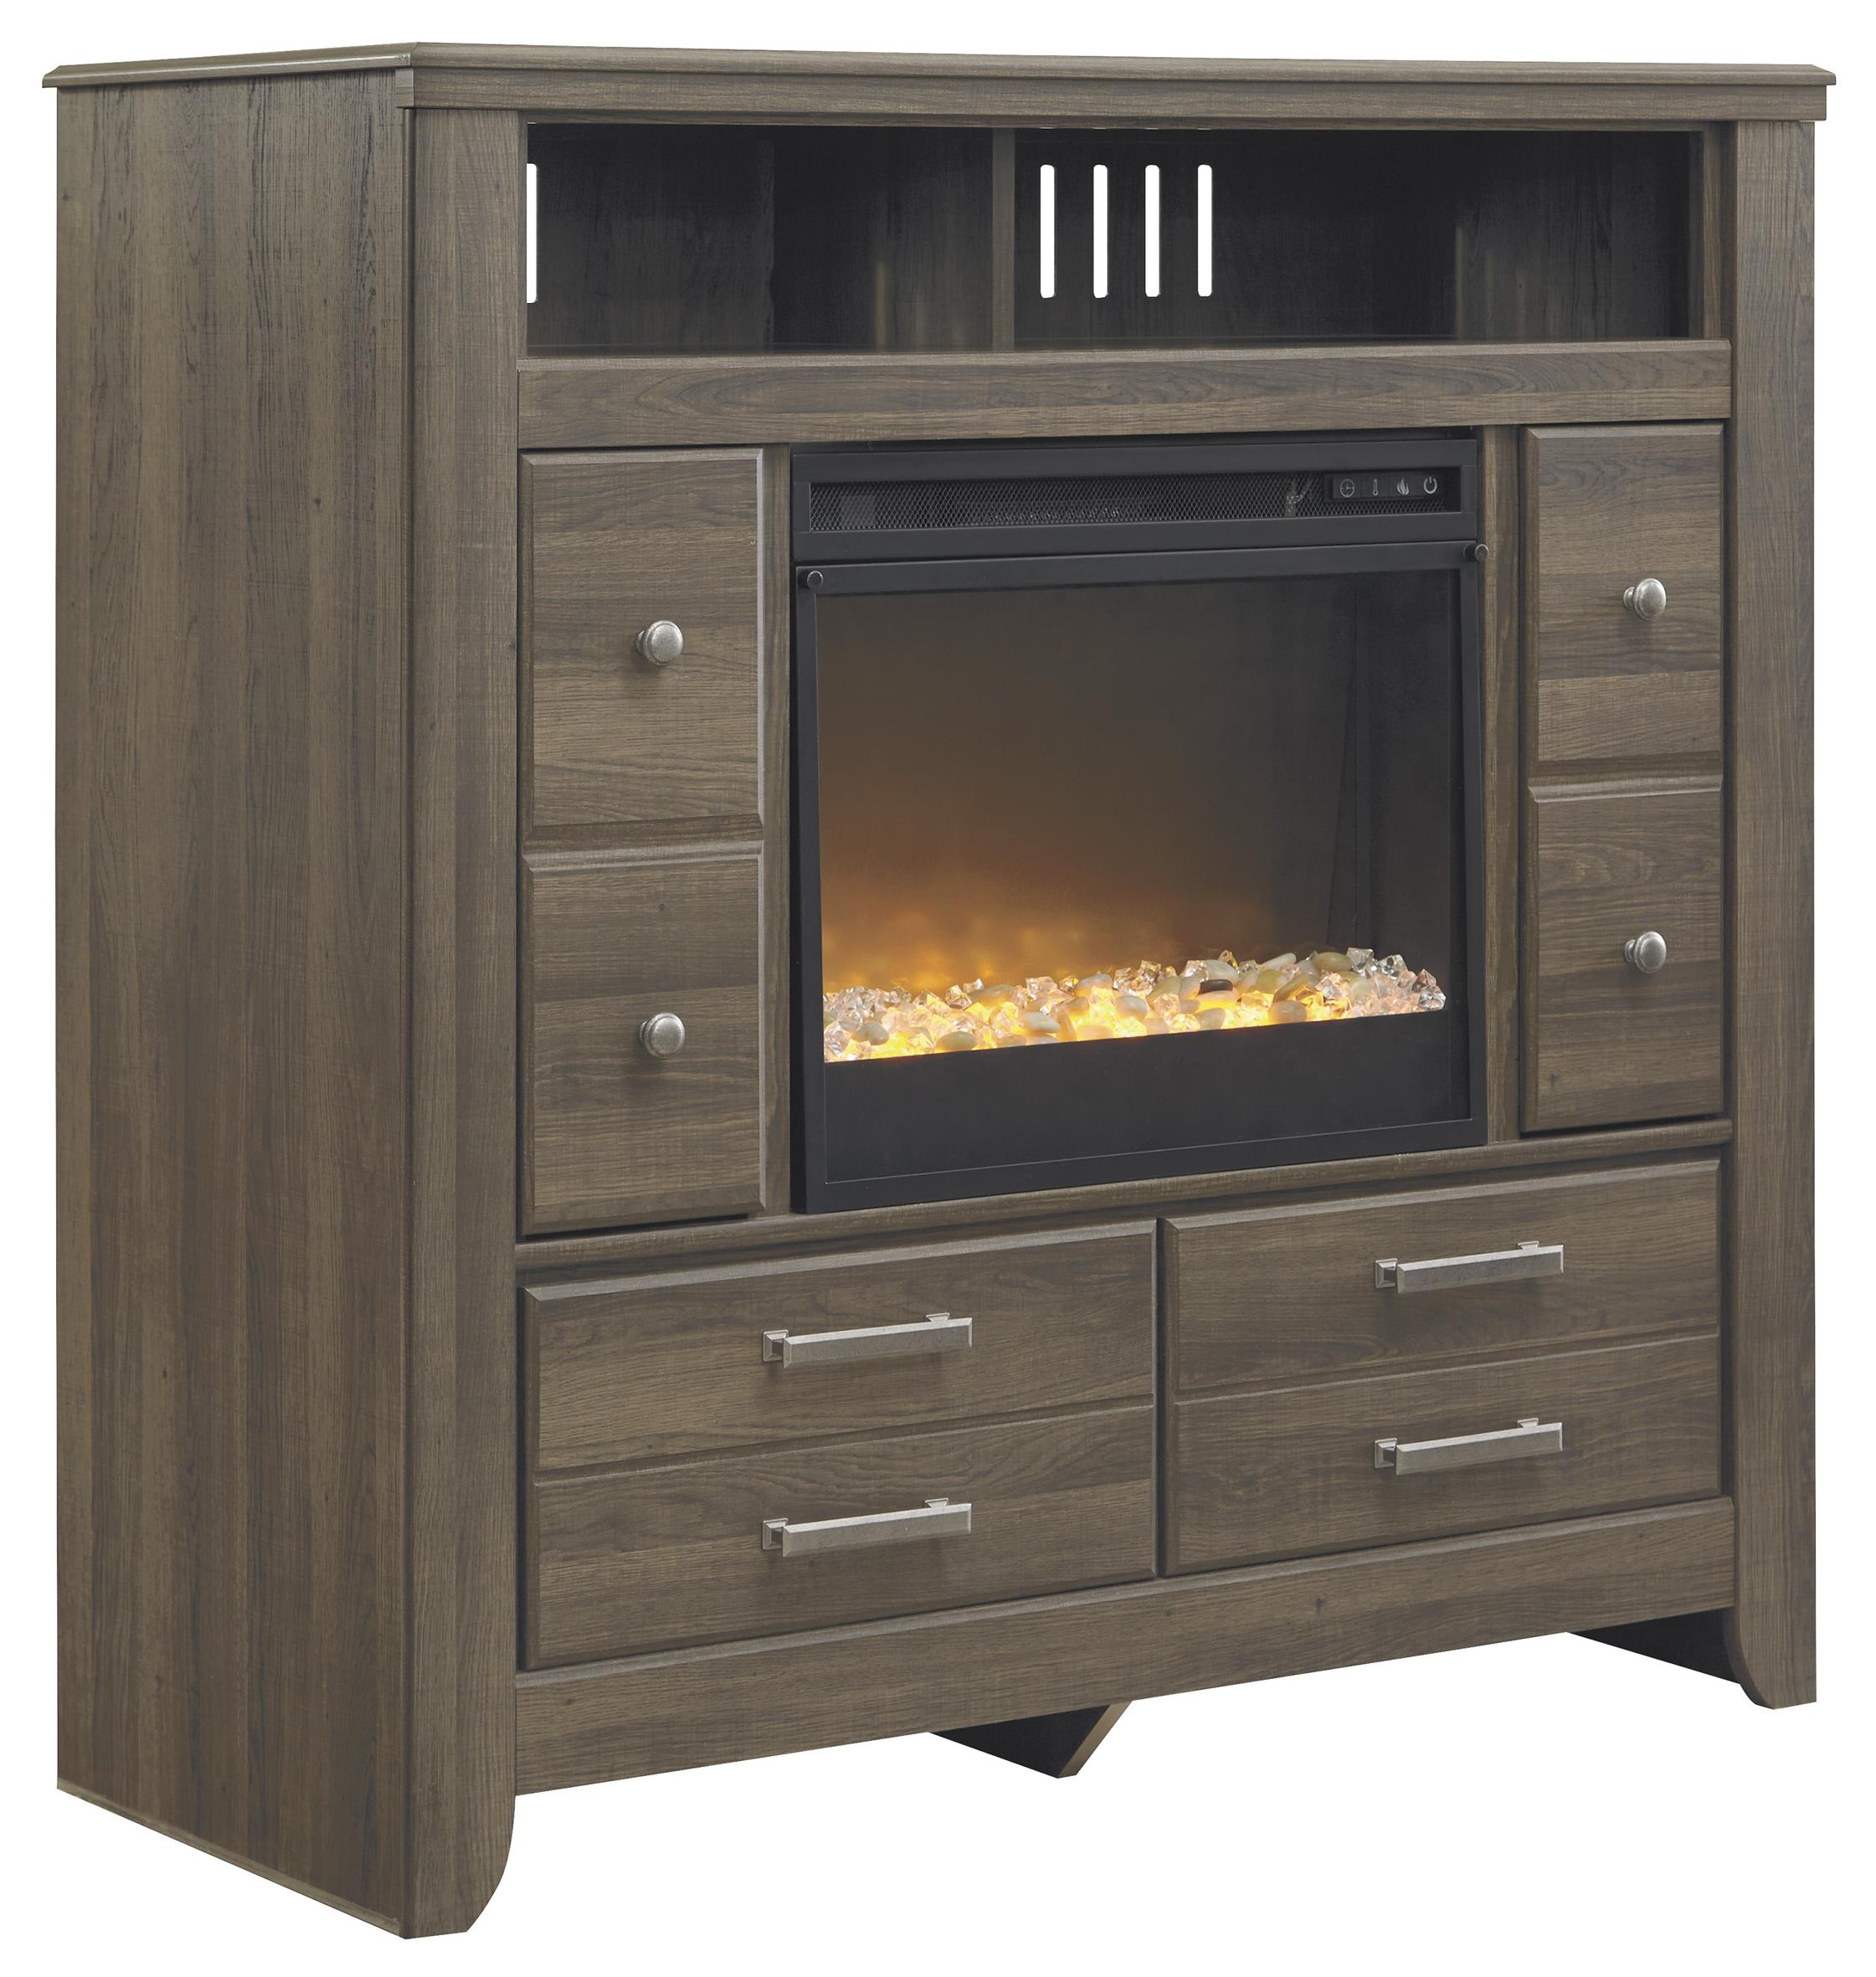 Signature Design by Ashley Juararo Media Chest with Electric Fireplace Insert - Item Number: B251-49+W100-02